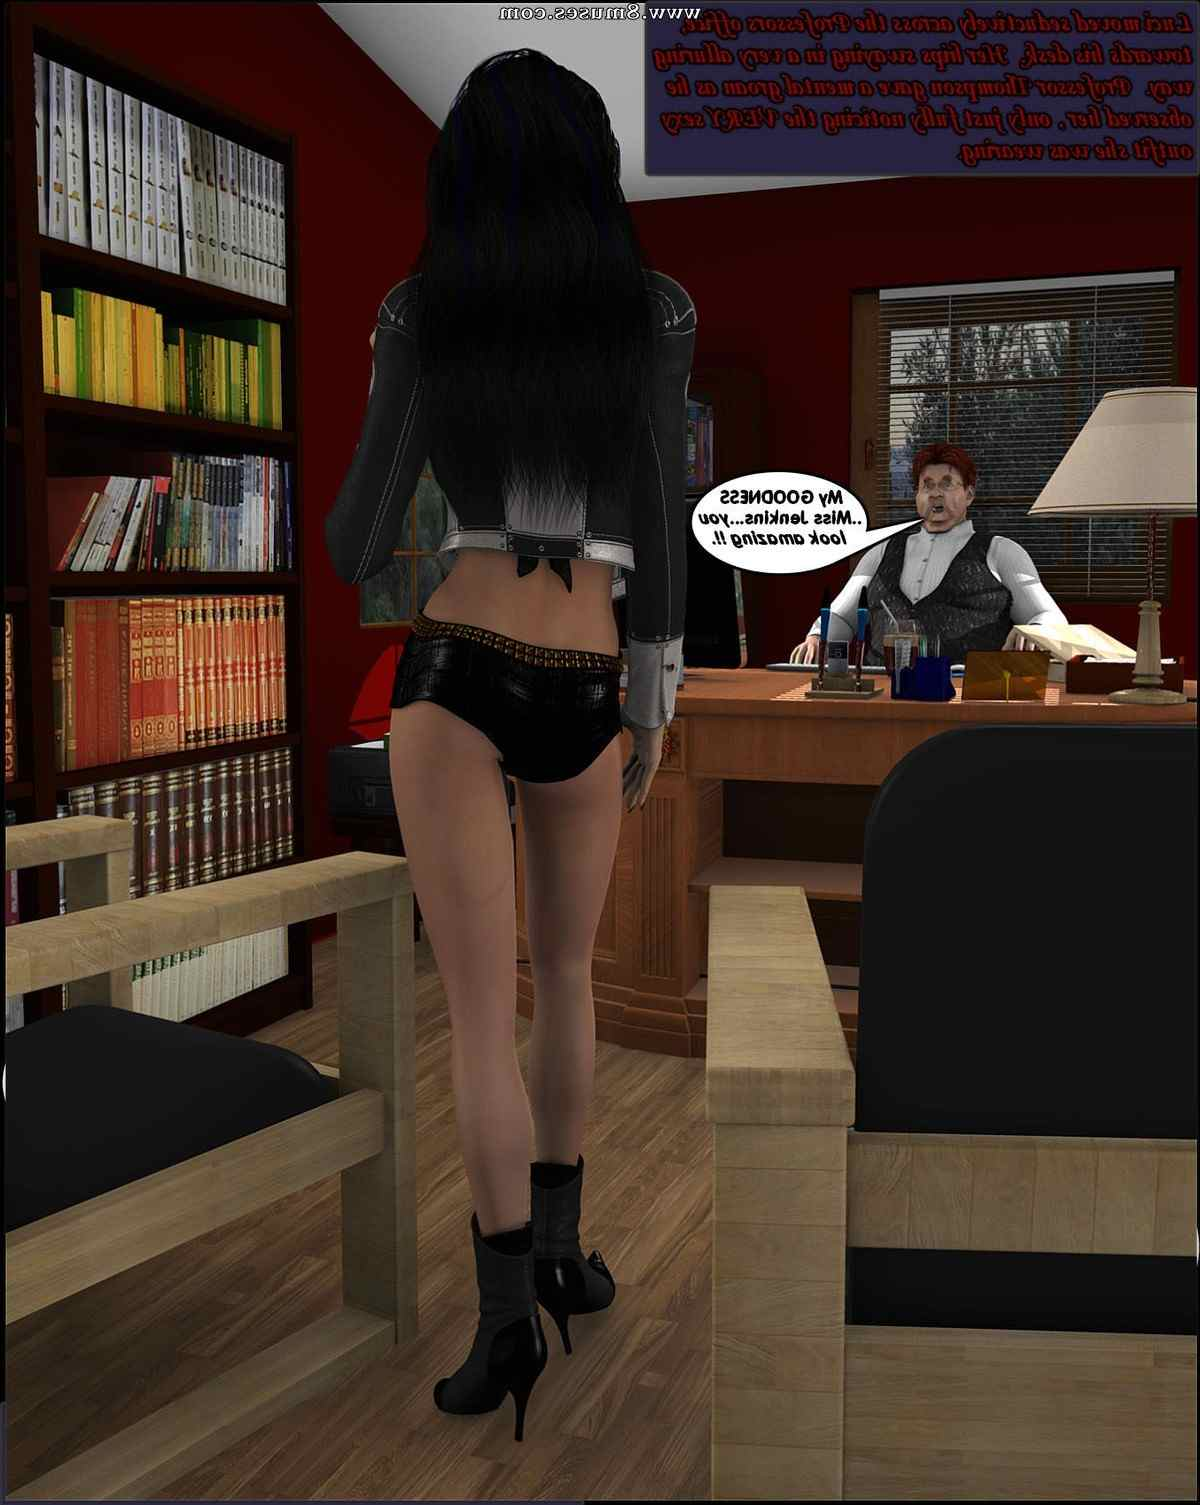 DarkSoul3D-Comics/Monstrous-Tales-Return-To-The-Boardwalk Monstrous_Tales_-_Return_To_The_Boardwalk__8muses_-_Sex_and_Porn_Comics_40.jpg